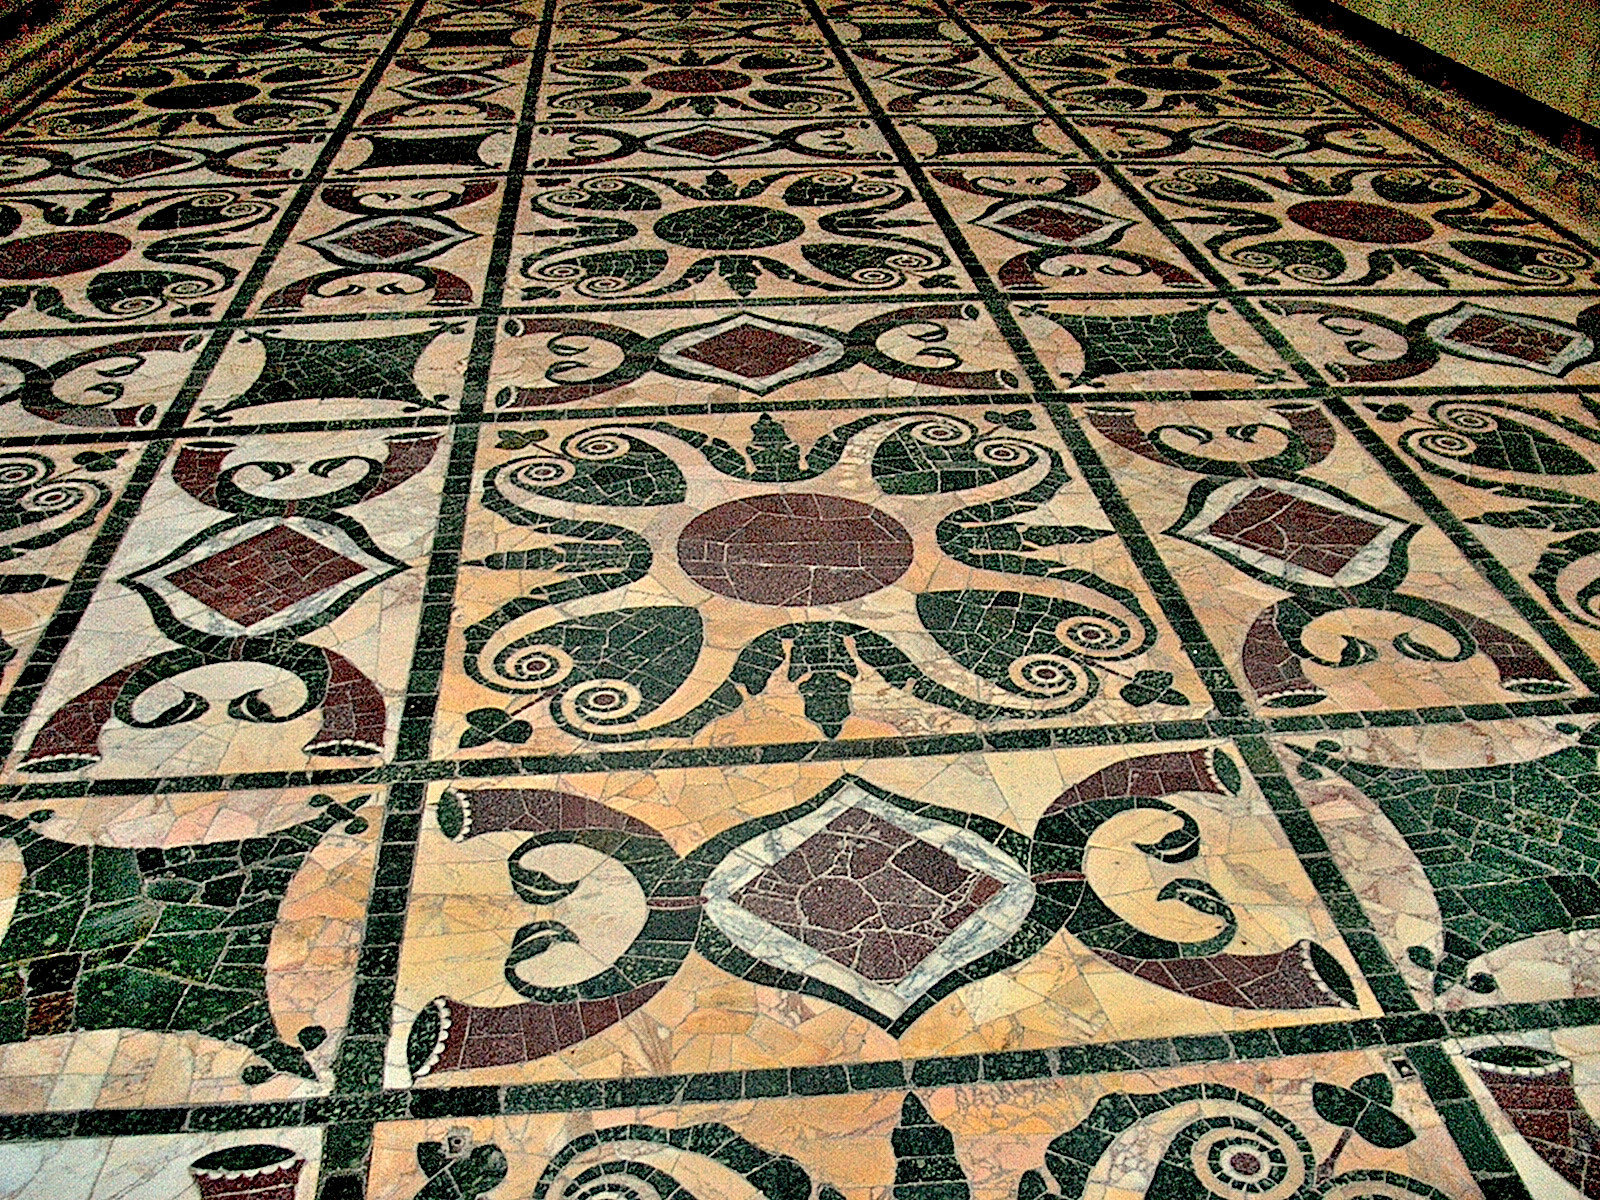 Marble floor of Curia Julia (1)